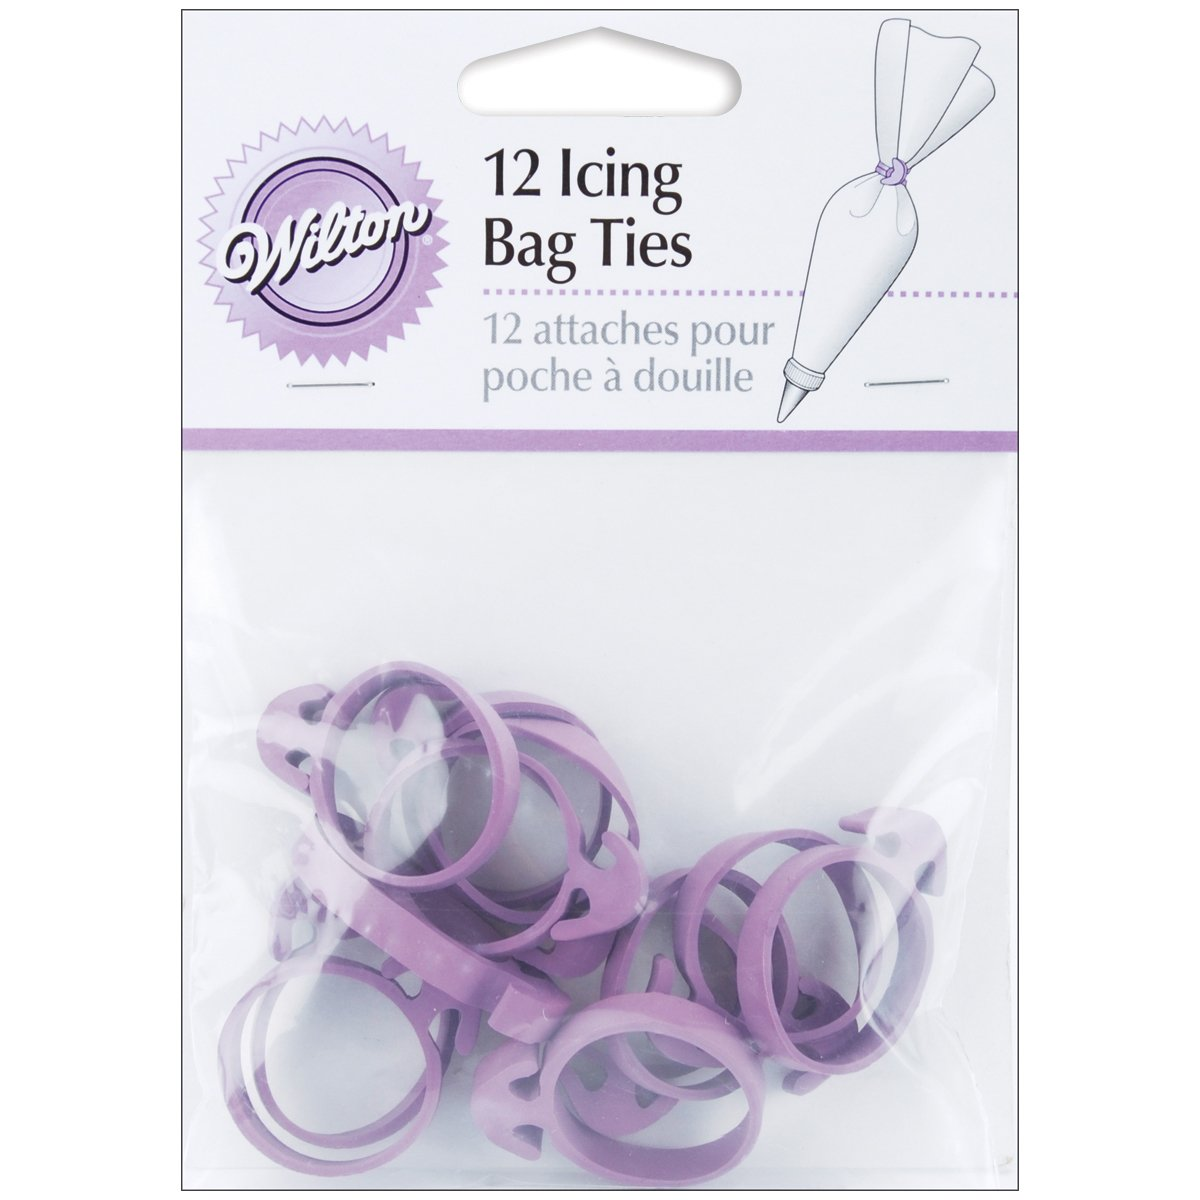 Wilton Icing Bag Ties, package of 12